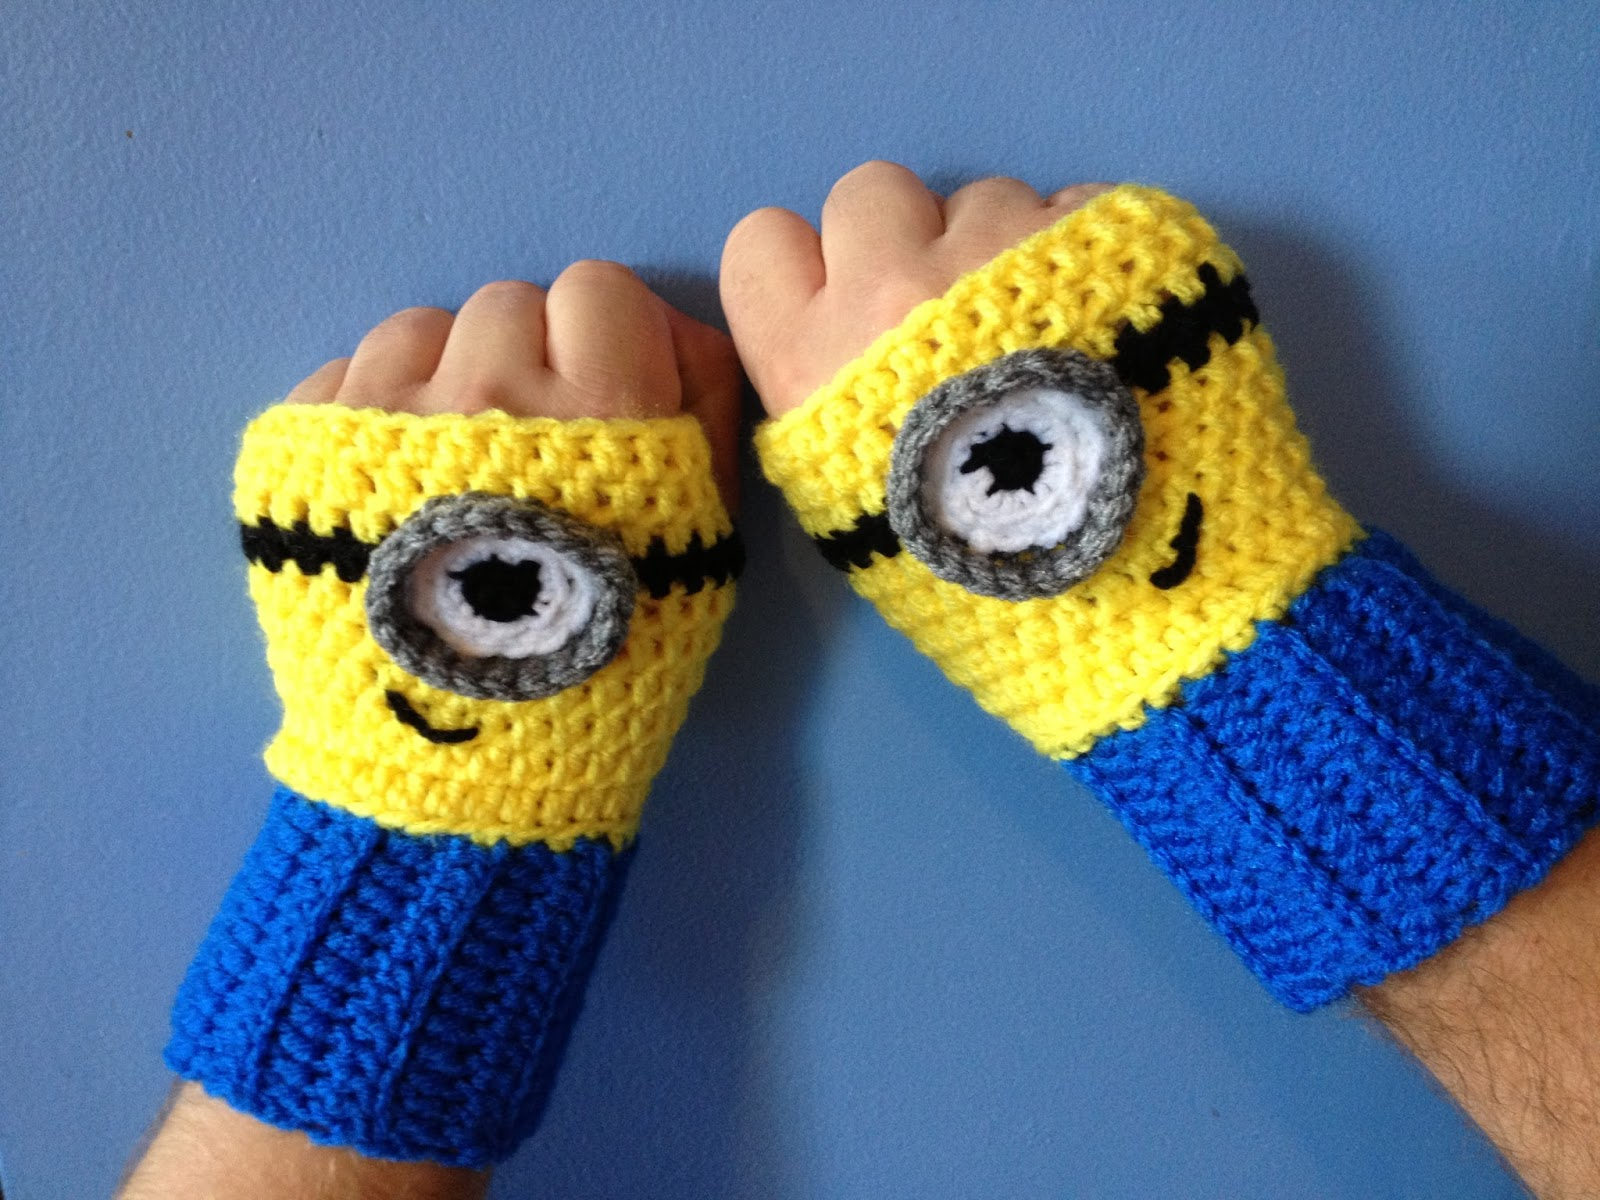 Crochet Pattern Minion : My Crocheted World: Despicable Me Minion Crochet Doll